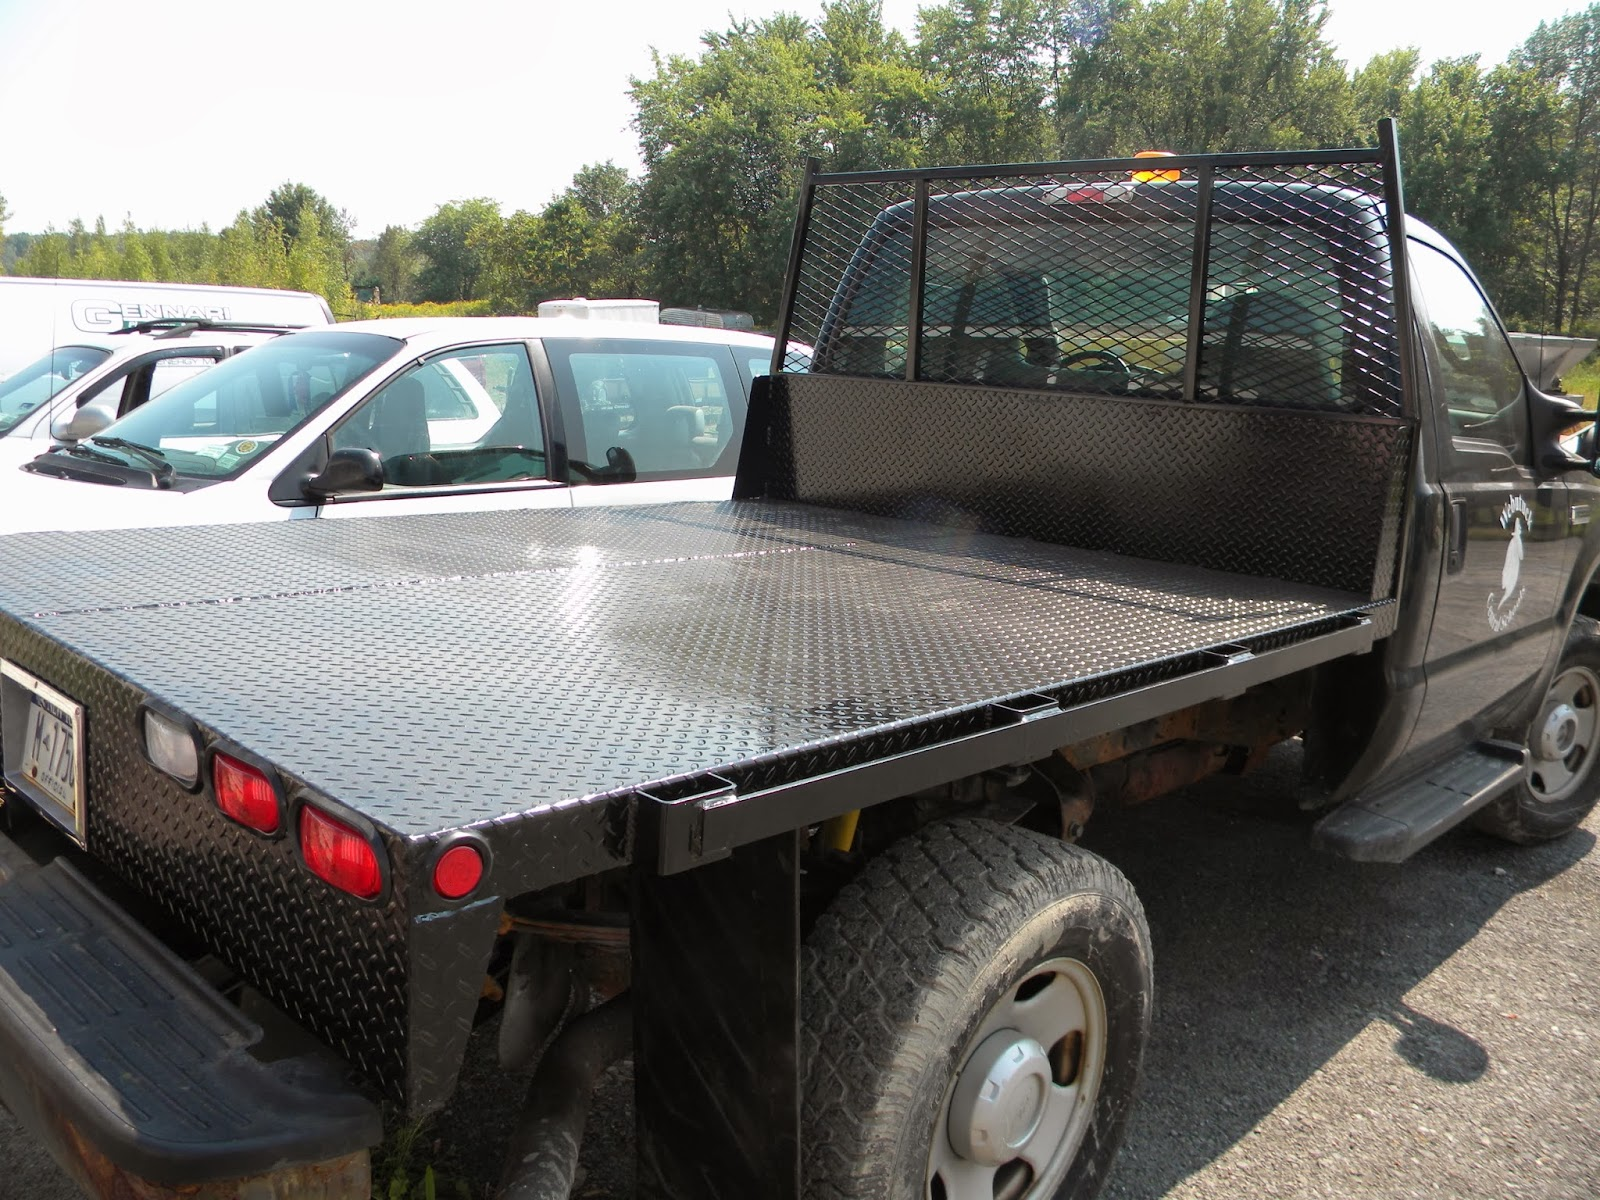 Ford F-350 Flat Bed - HHTB-100 - 8FT Diamond Plated Bed | Heavy ...